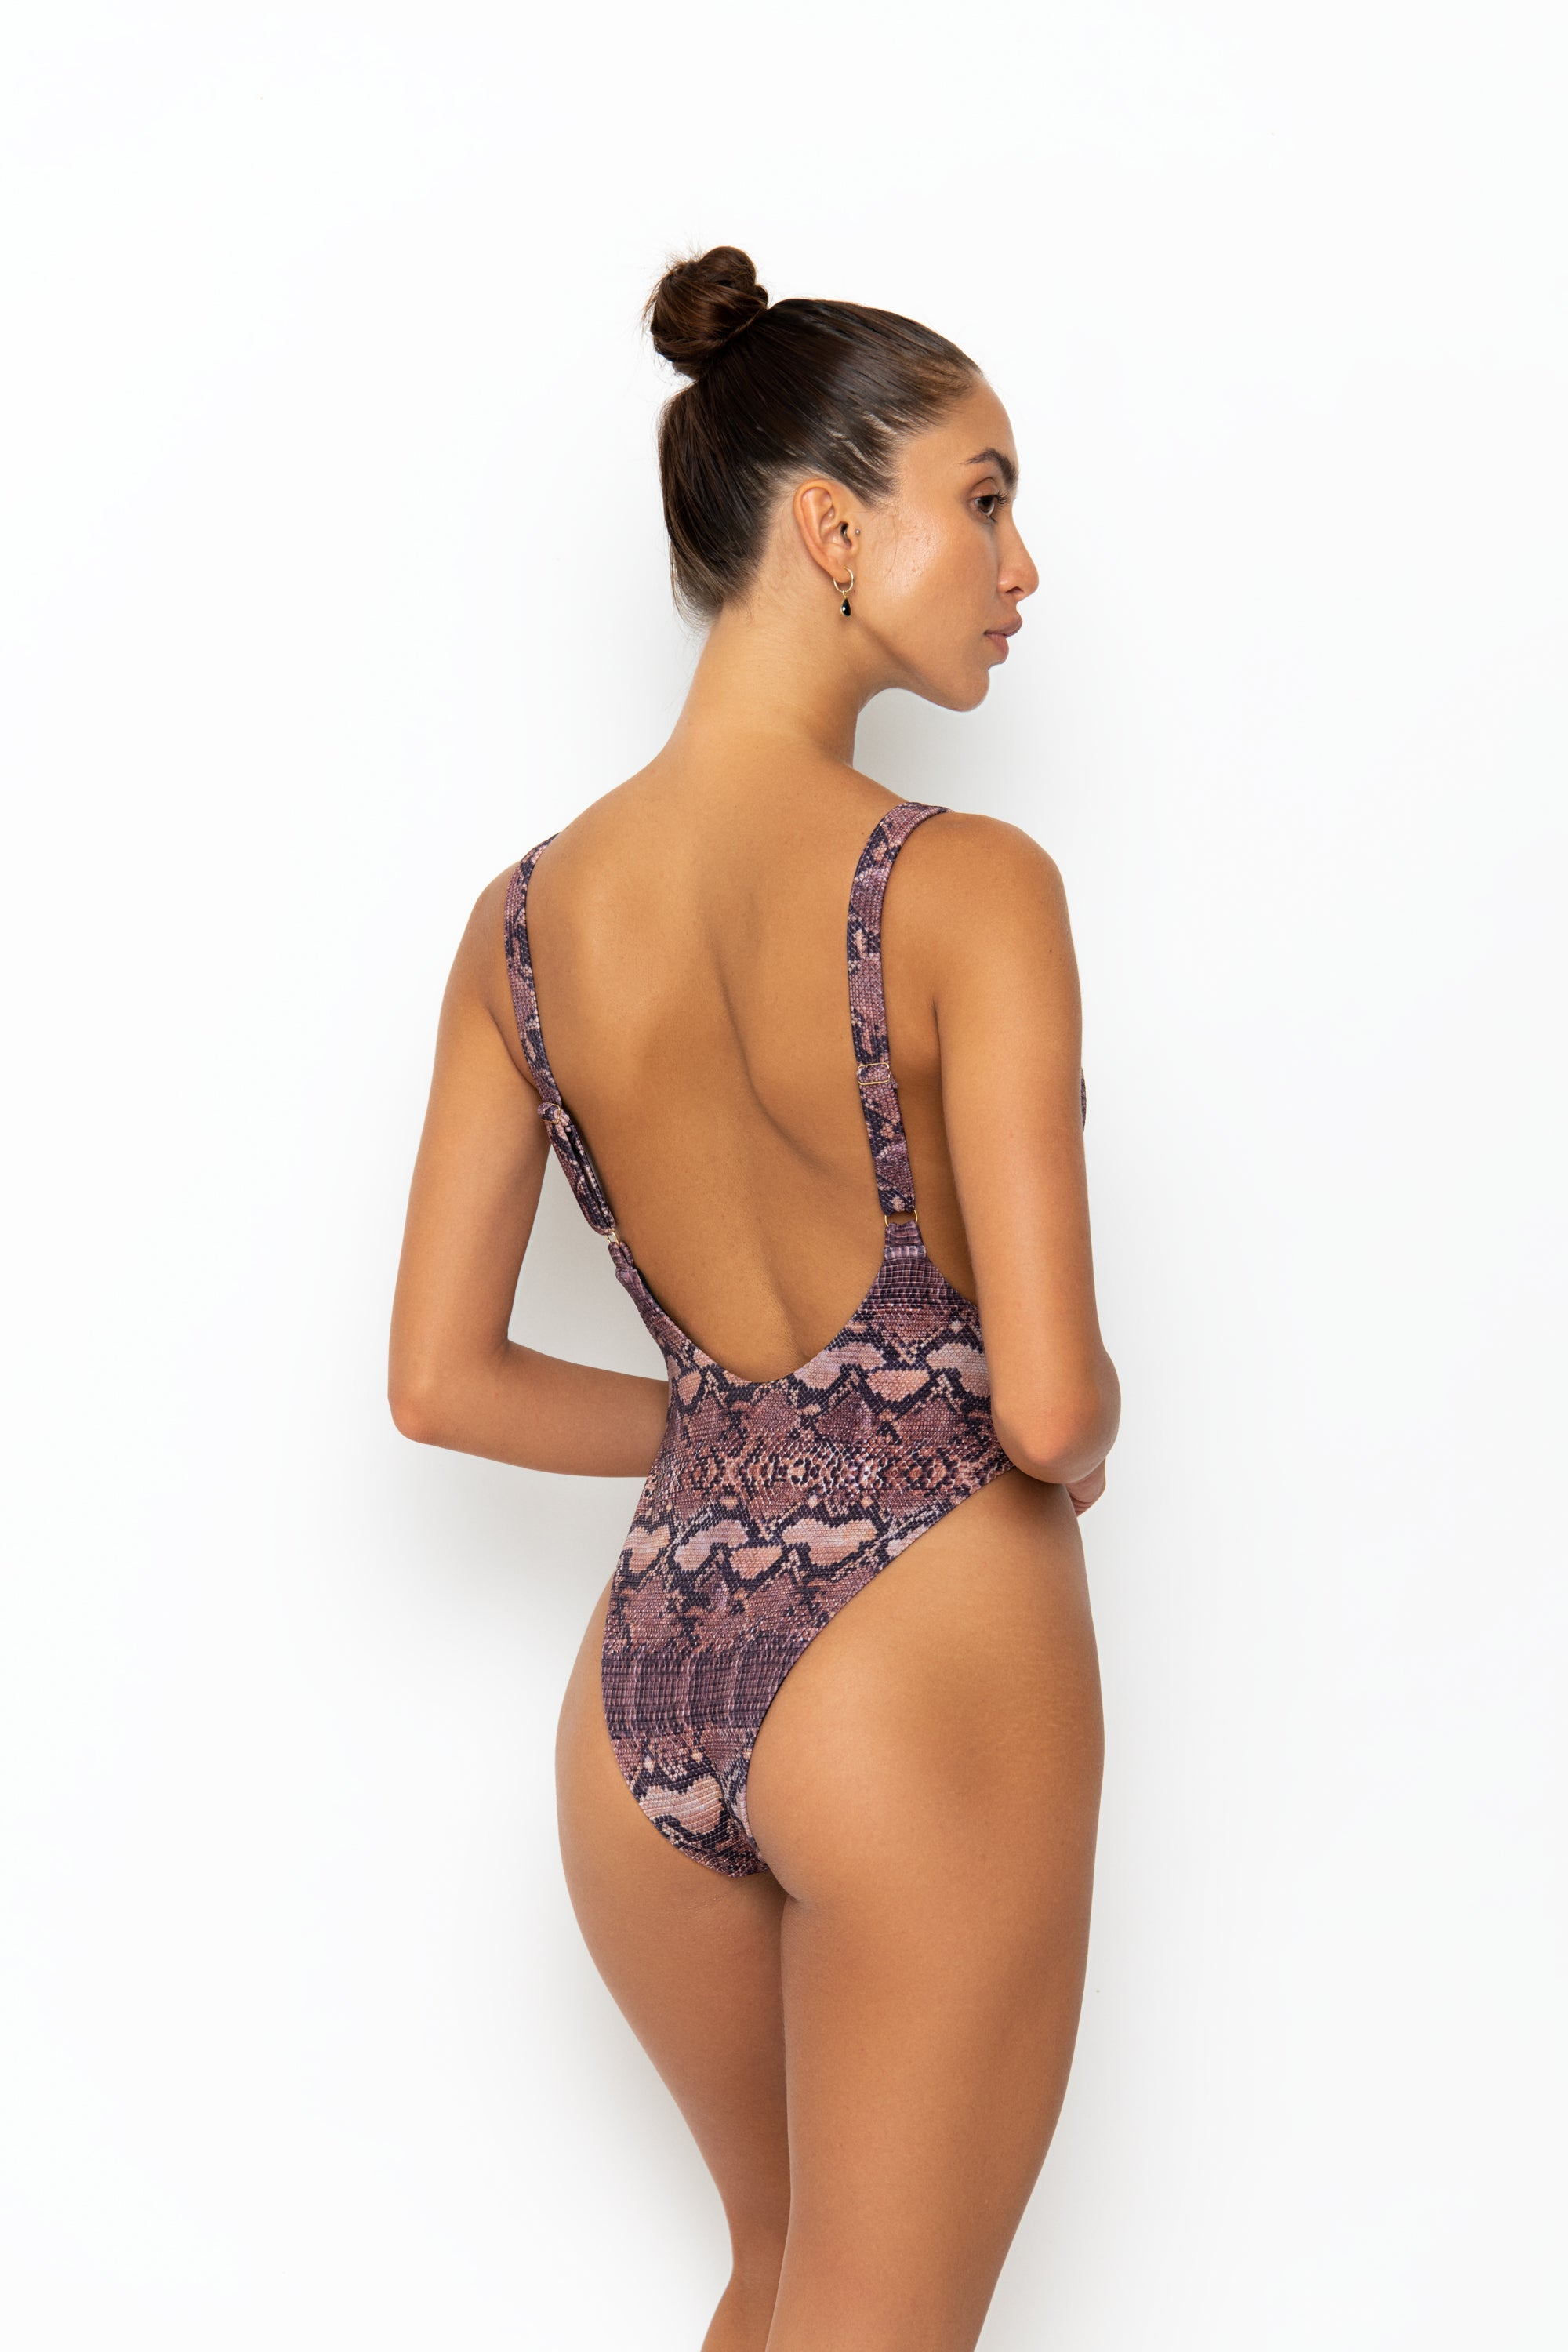 AFIA SWIMSUIT - BROWN SNAKE RIB